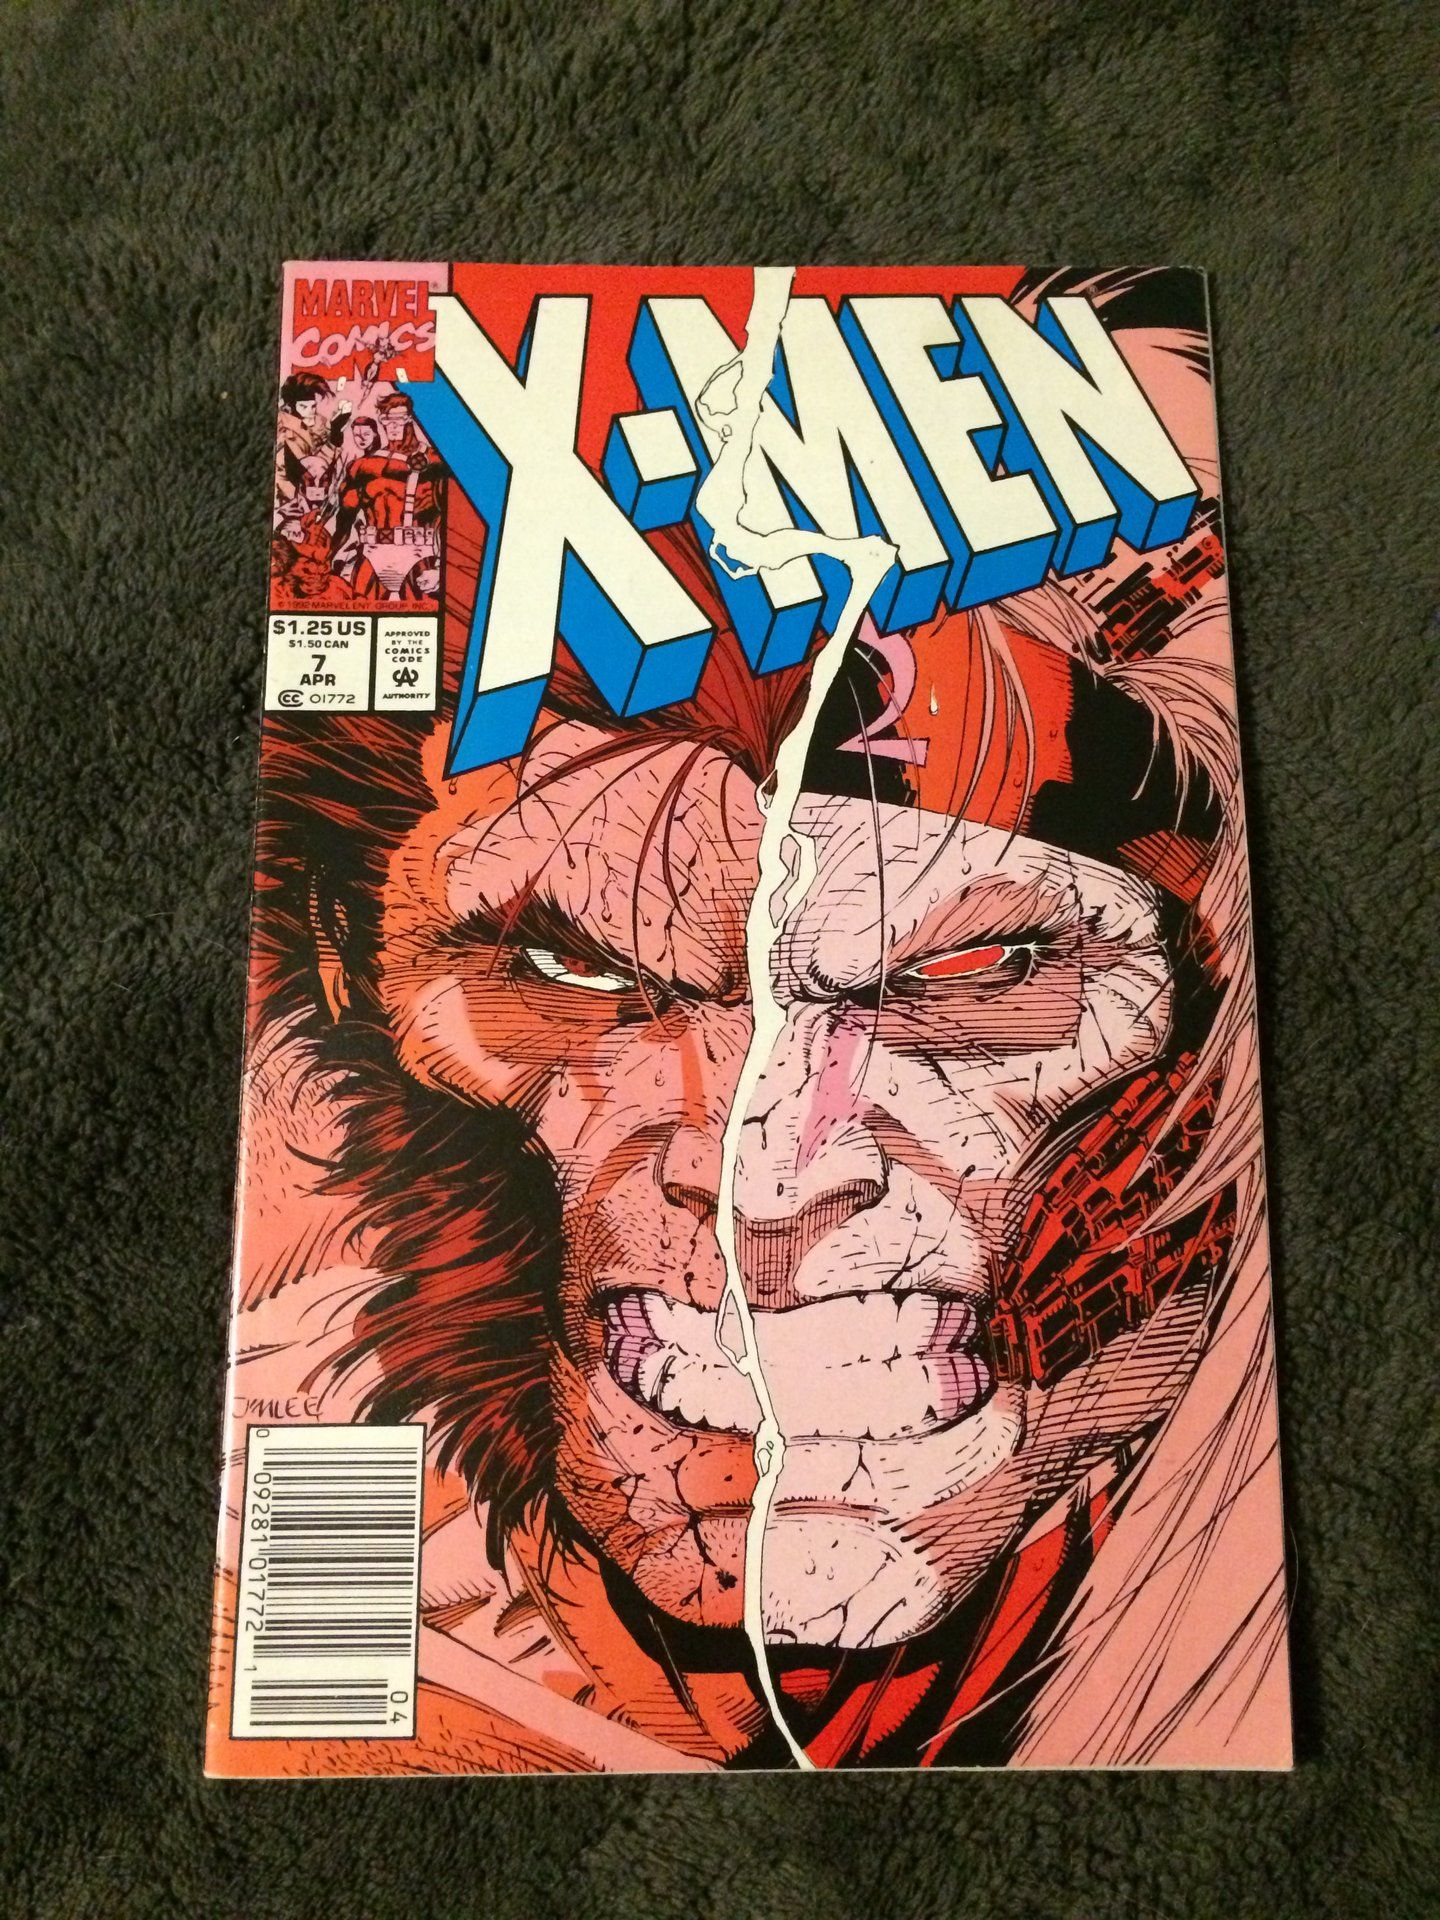 X Men 7 First Print 1992 Marvel Comics Nm First 2020 No Reserve Penny Auction Is In Full Swing With Hipcomic Check Out What We In 2020 Marvel Comics Comics Marvel